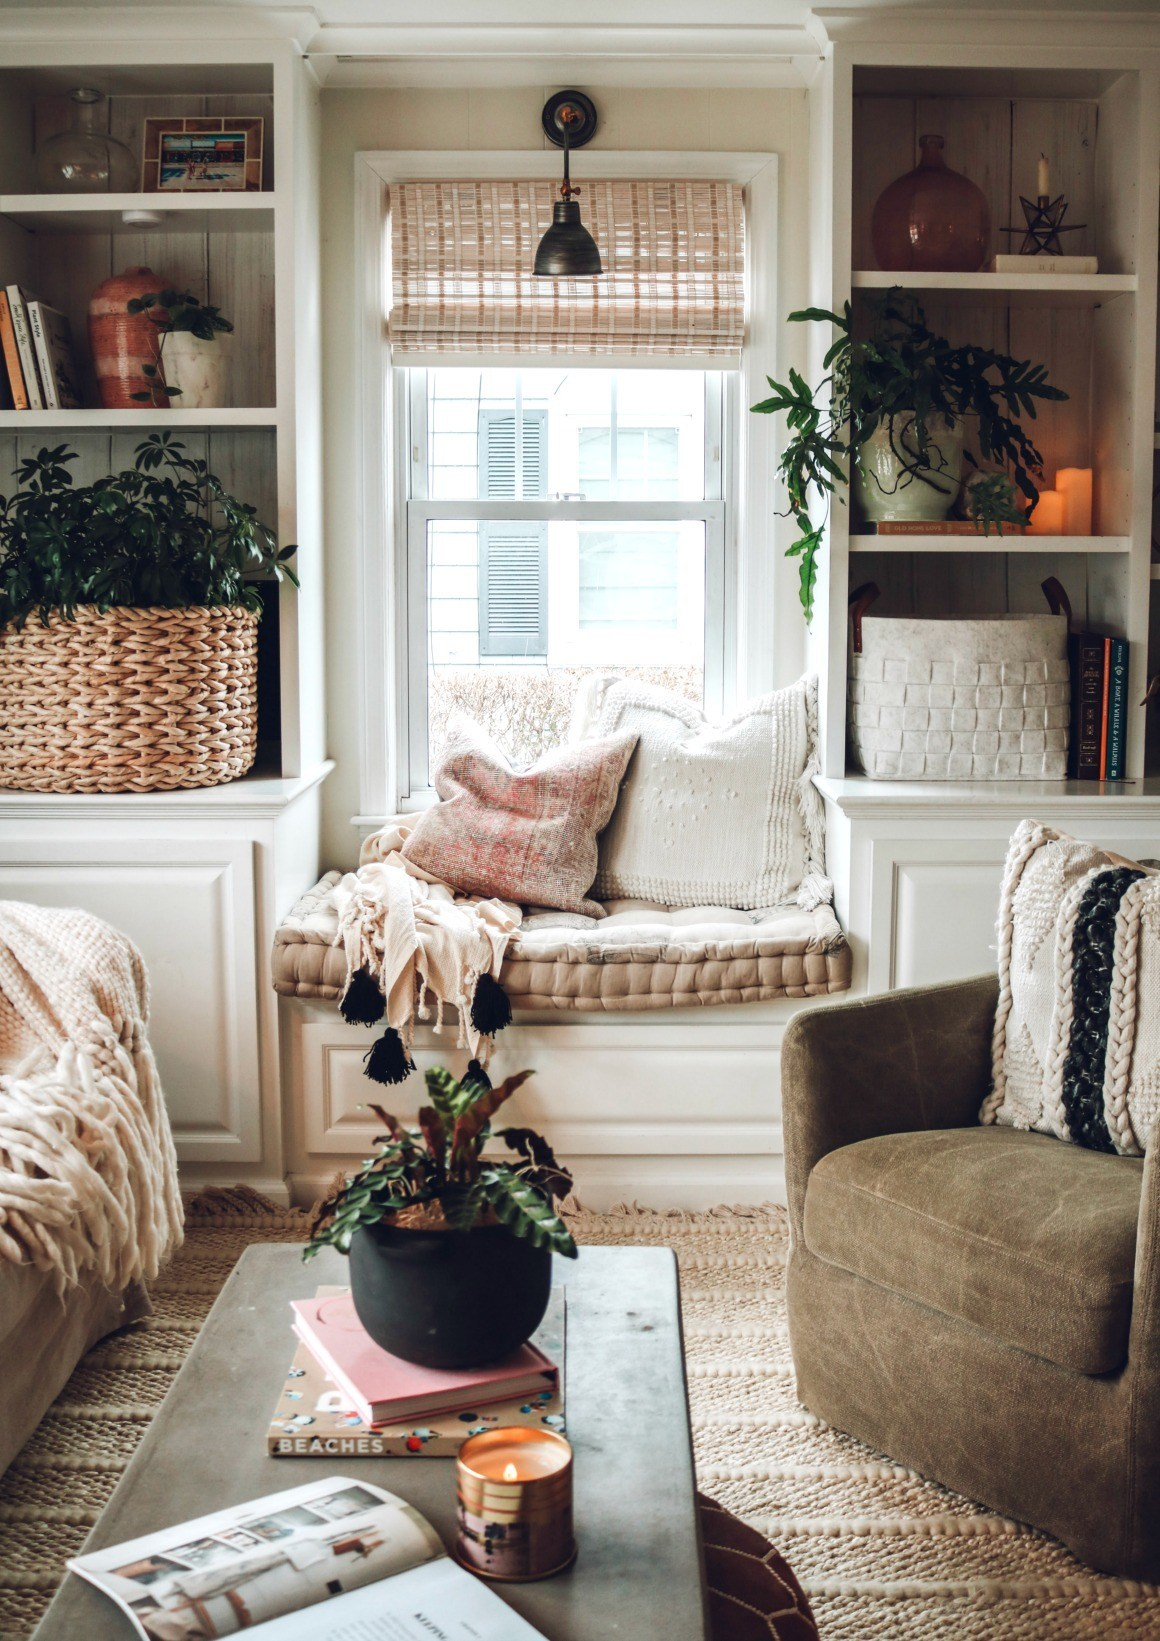 Living Room Update Ideas: Ready For Cosy Autumn Home Updates? Check Out These 10